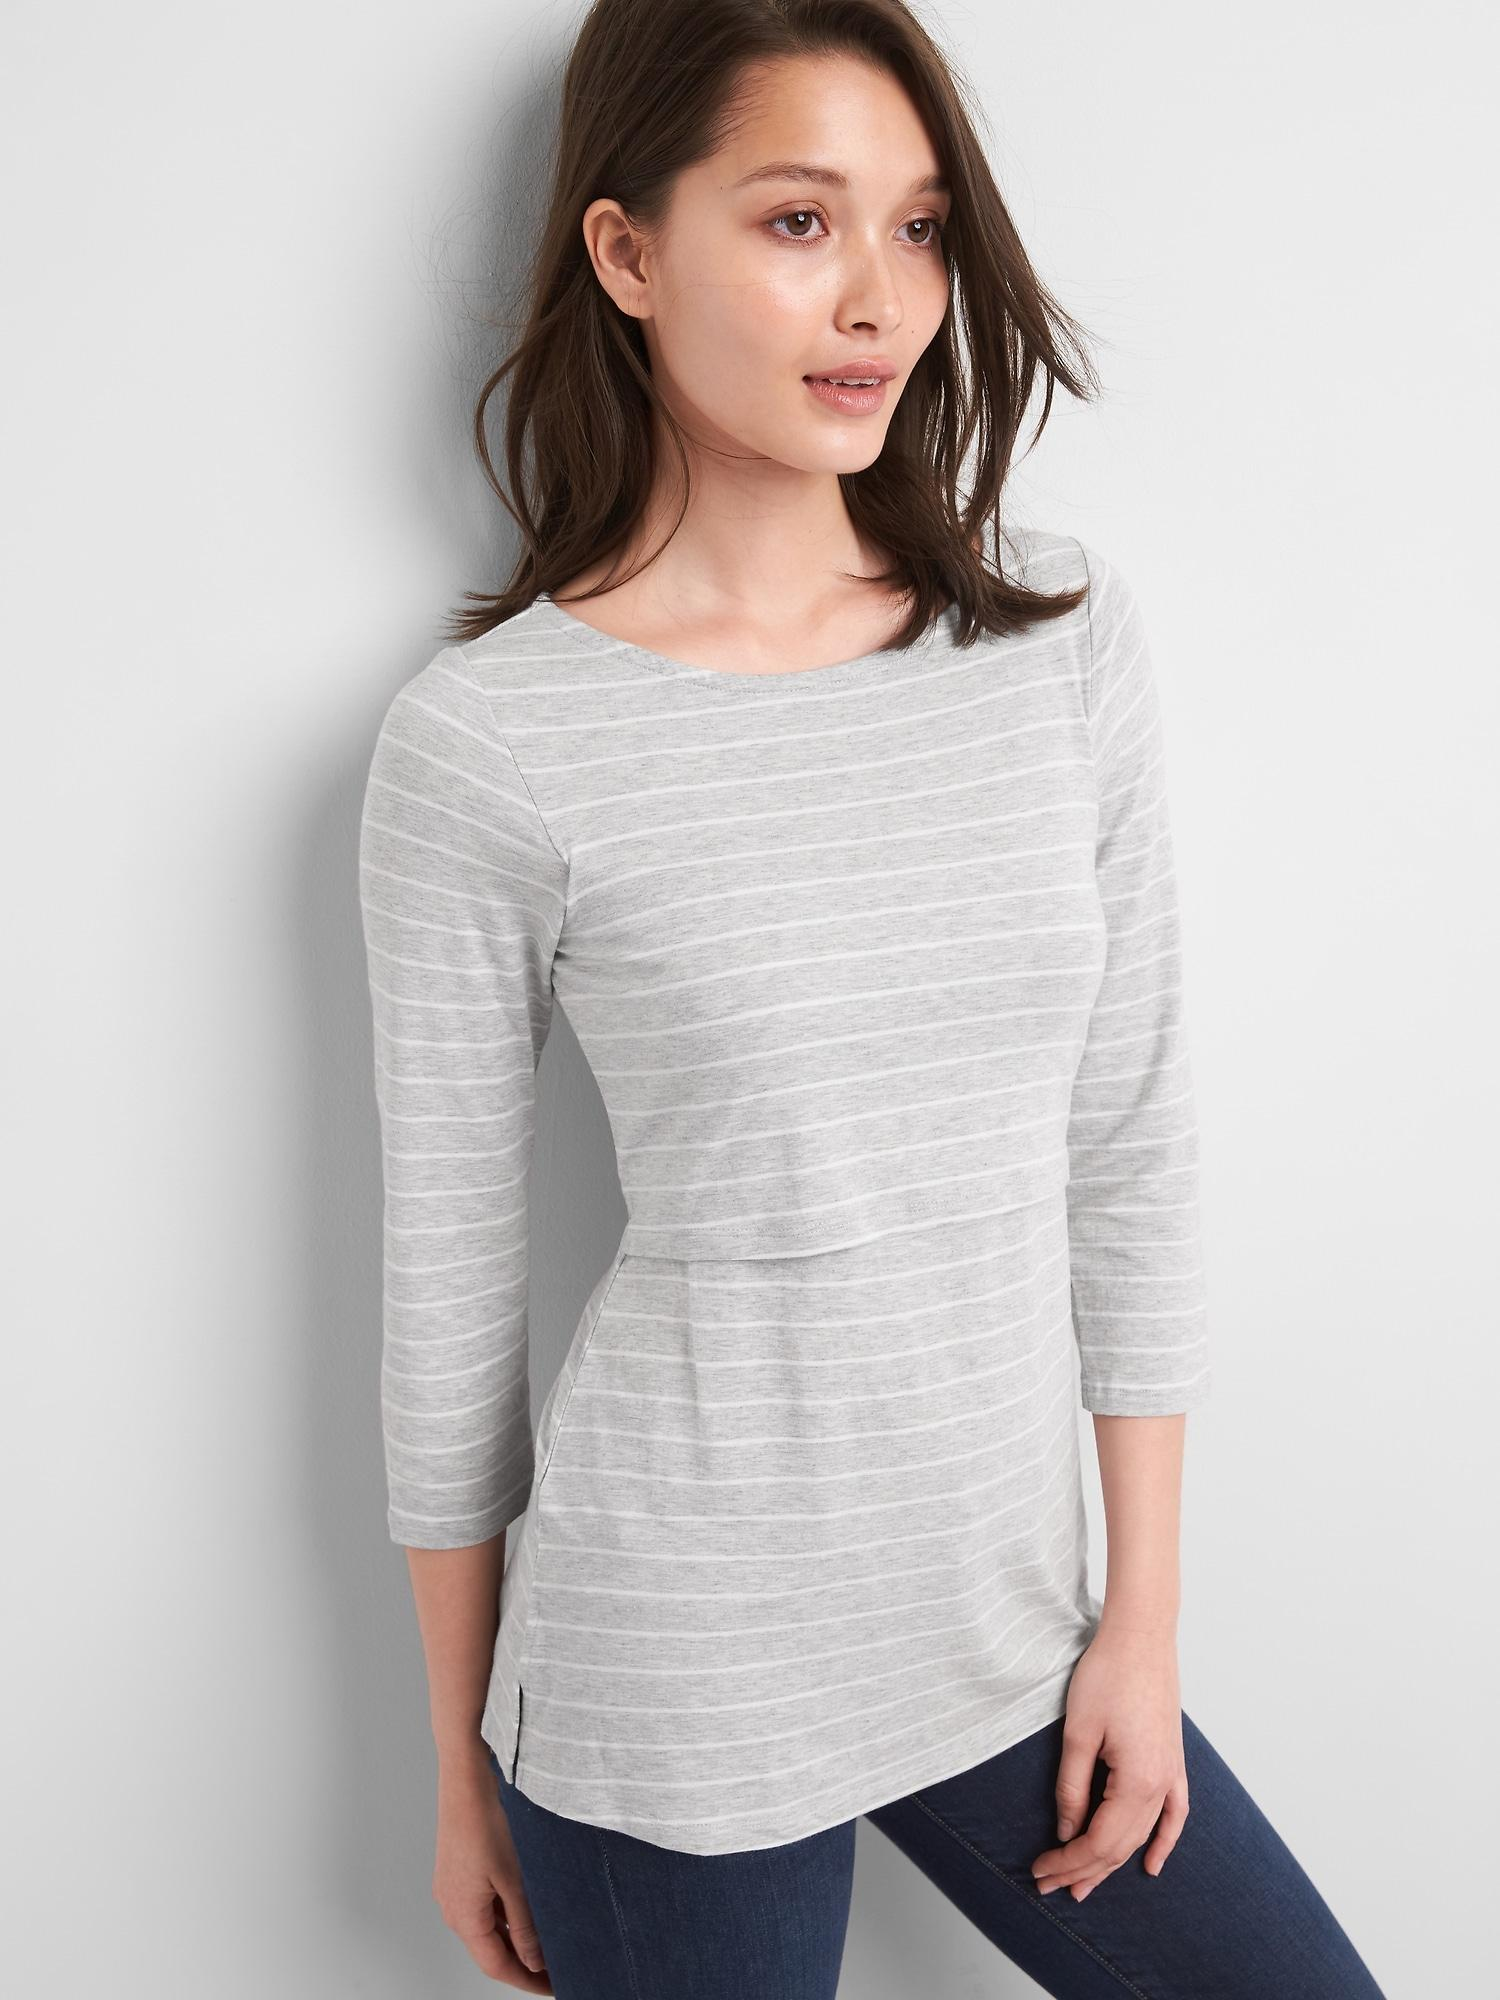 Lyst - Gap Maternity Stripe Layer Nursing T-shirt in Gray fc268dddc